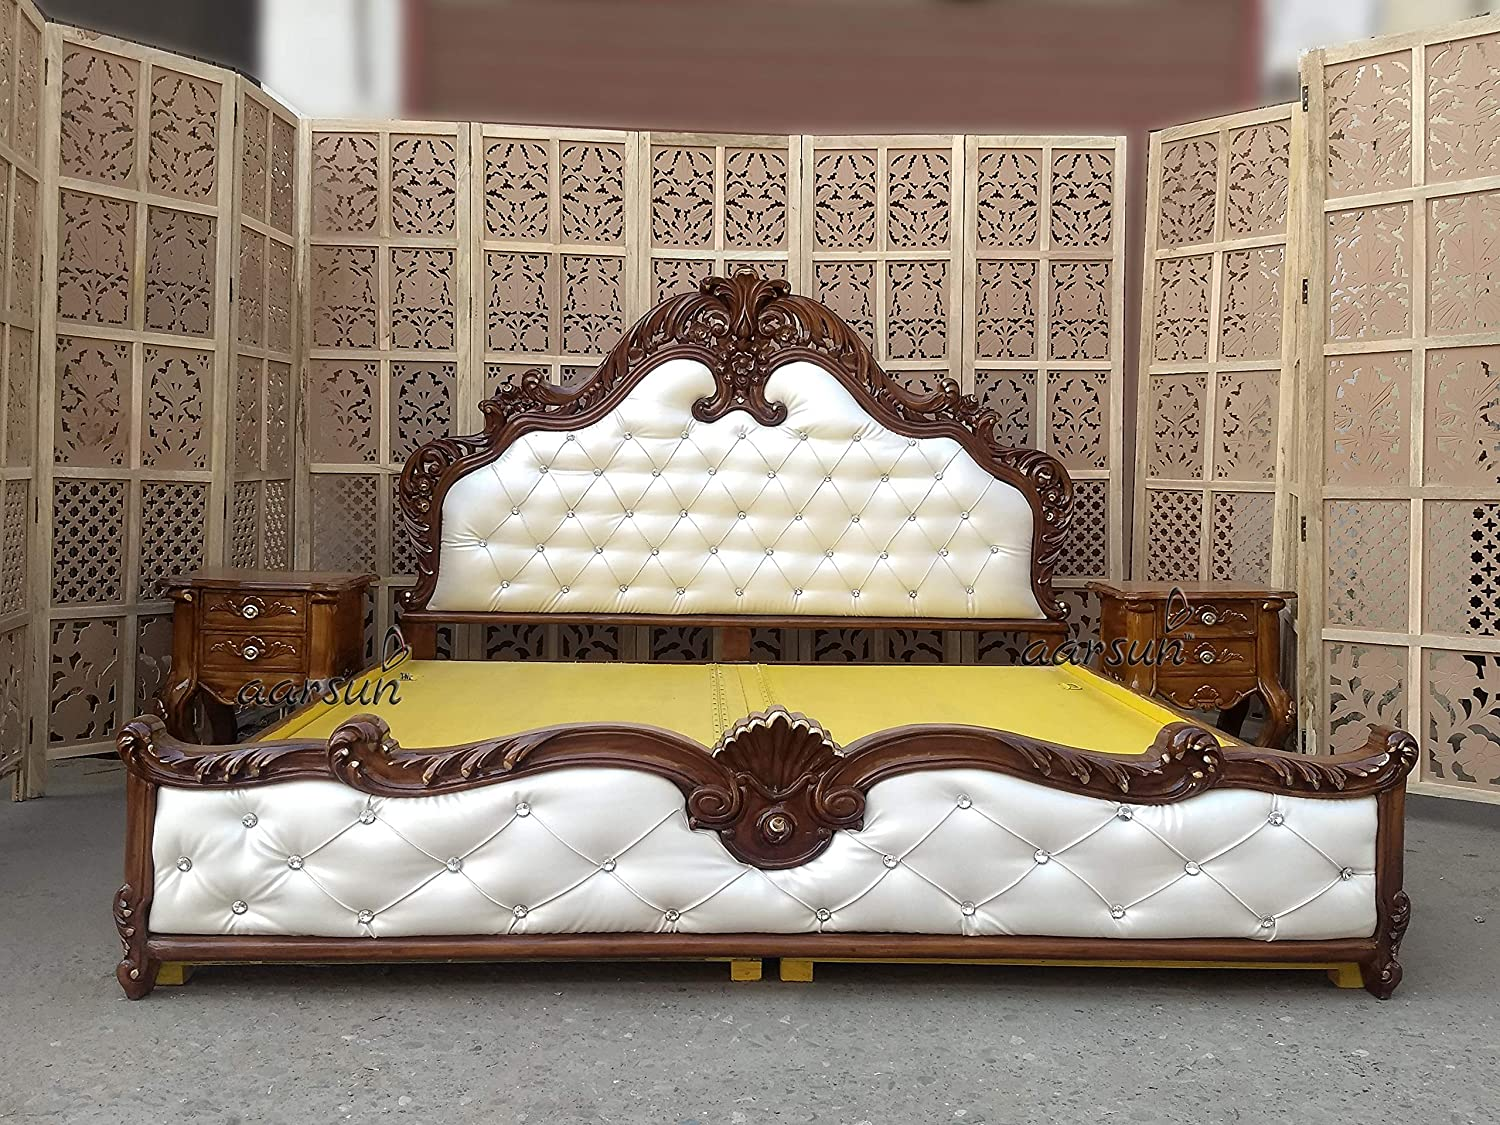 Aarsun Royal Bed With Side Tables In Teak Wood Bedroom Set King Size Hand Carved Light Walnut Finish Brown Amazon In Furniture